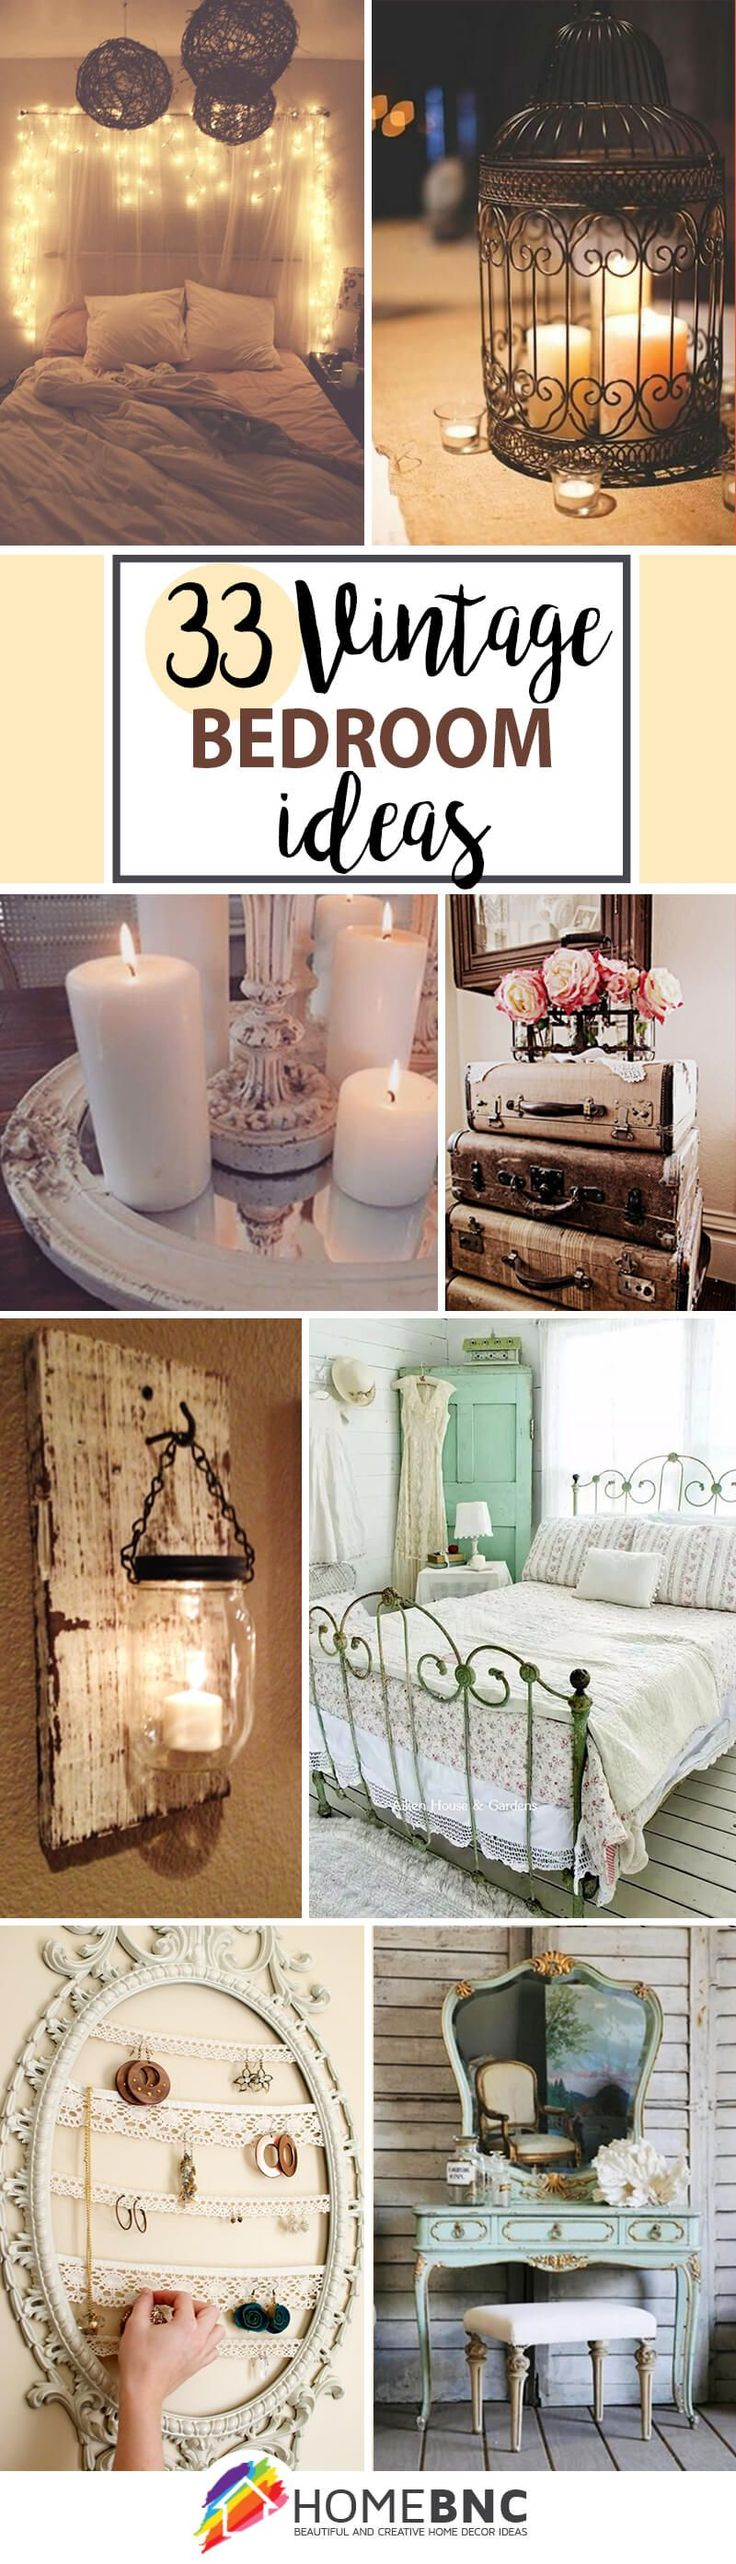 33 Vintage Bedroom Decor Ideas To Turn Your Room Into A Paradise